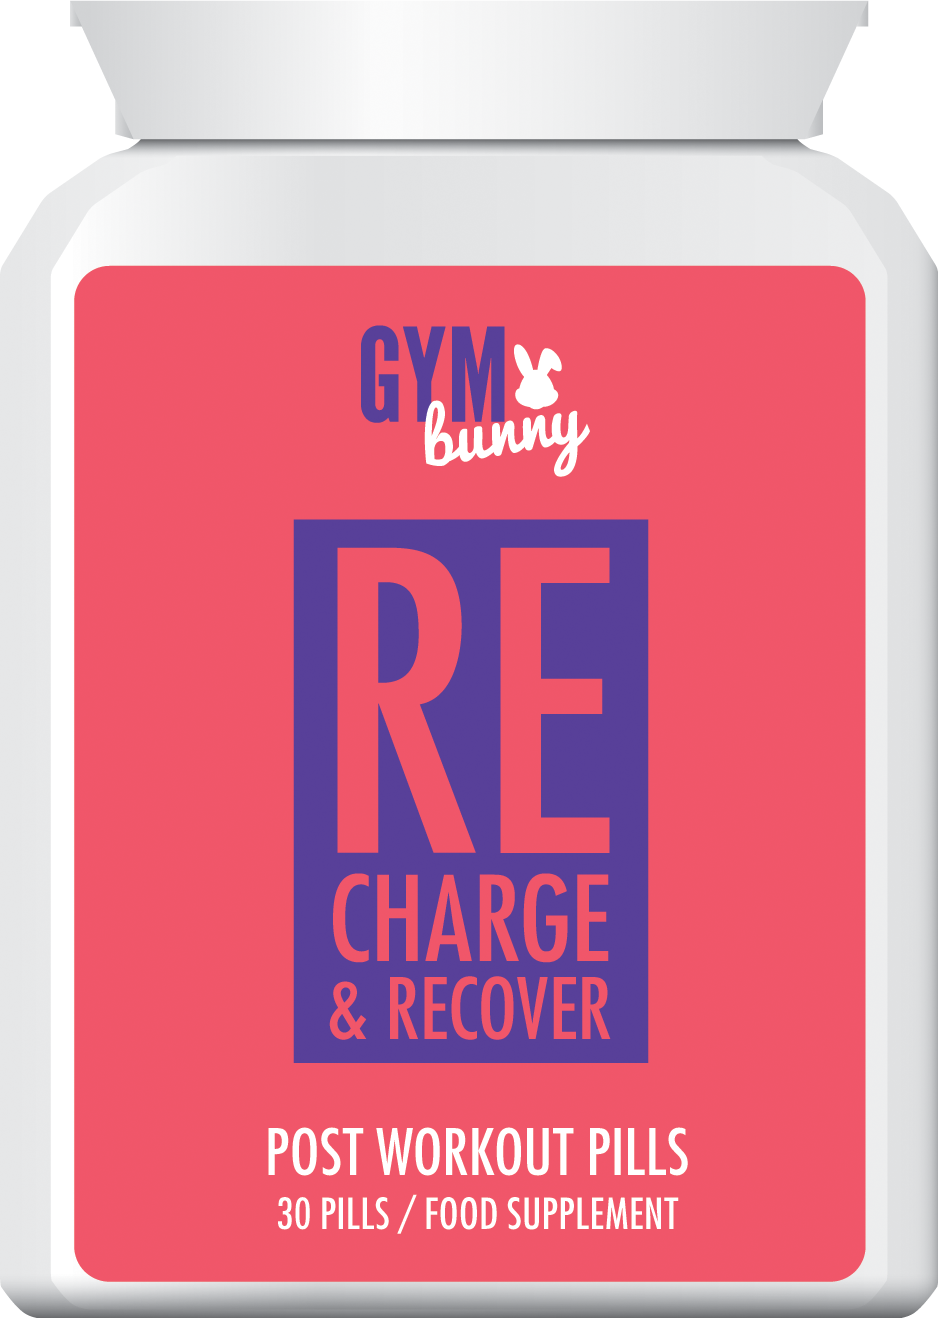 GYM BUNNY RECHARGE & RECOVER POST WORKOUT PILLS